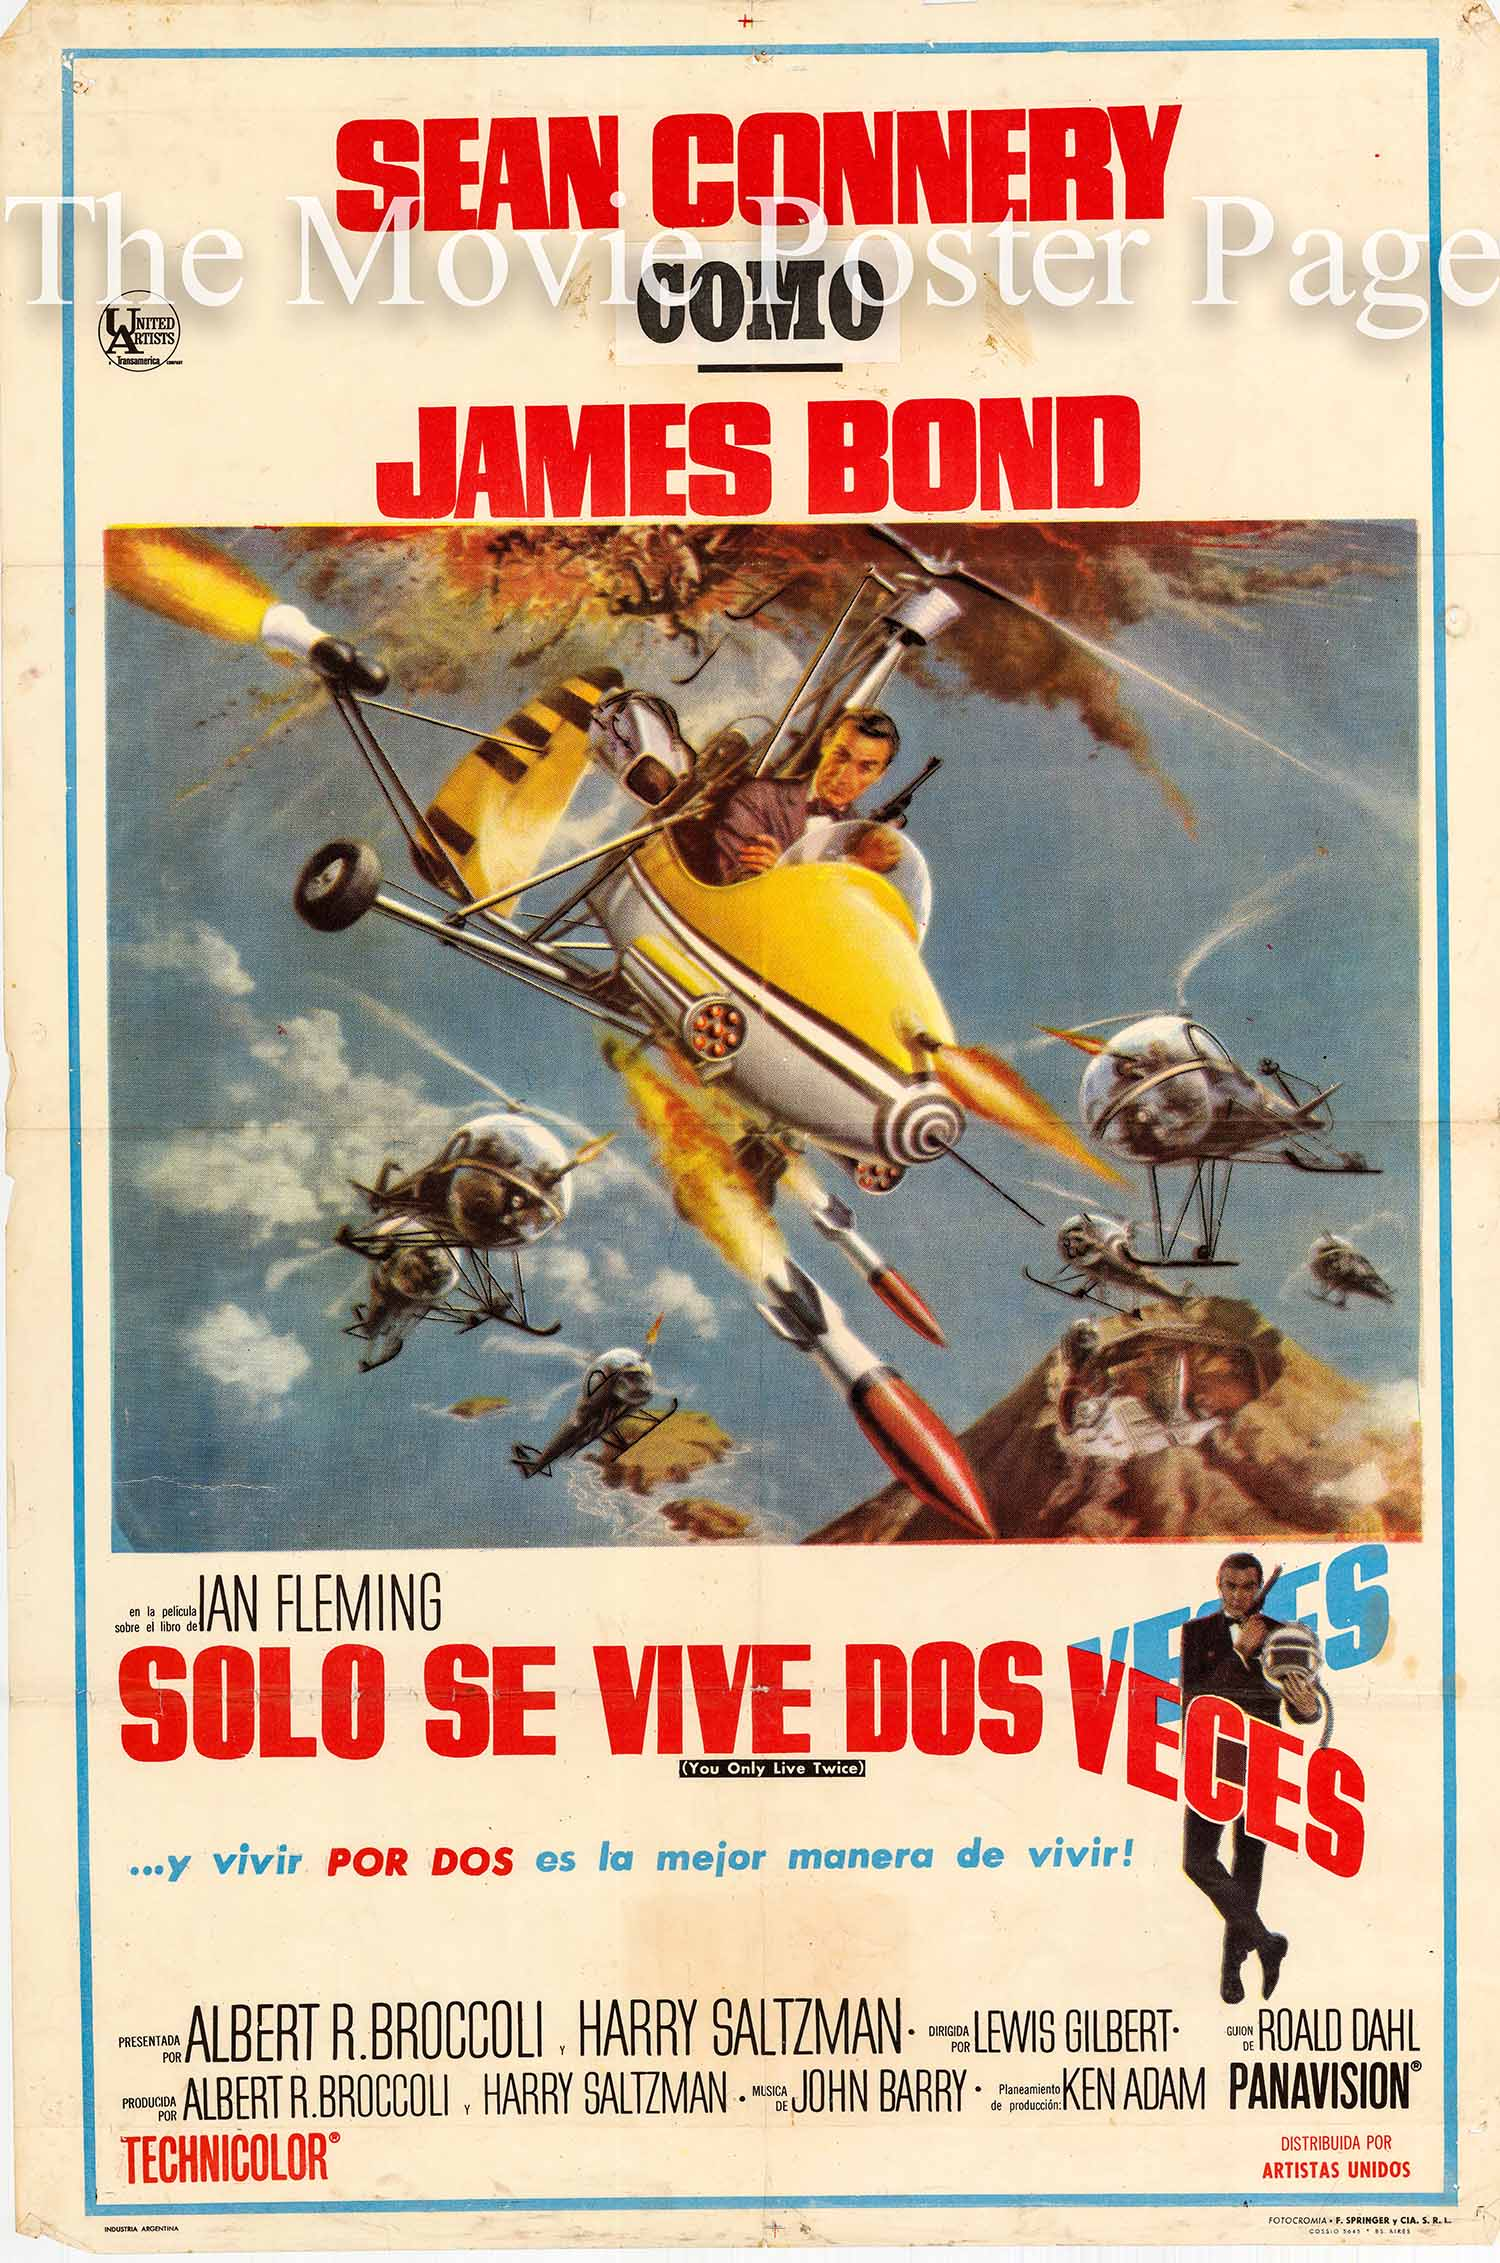 Pictured is an Argentine one-sheet stone litho poster made to promote the 1967 Lewis Gilbert film You Only Live Twice starring Sean Connery as James Bond.